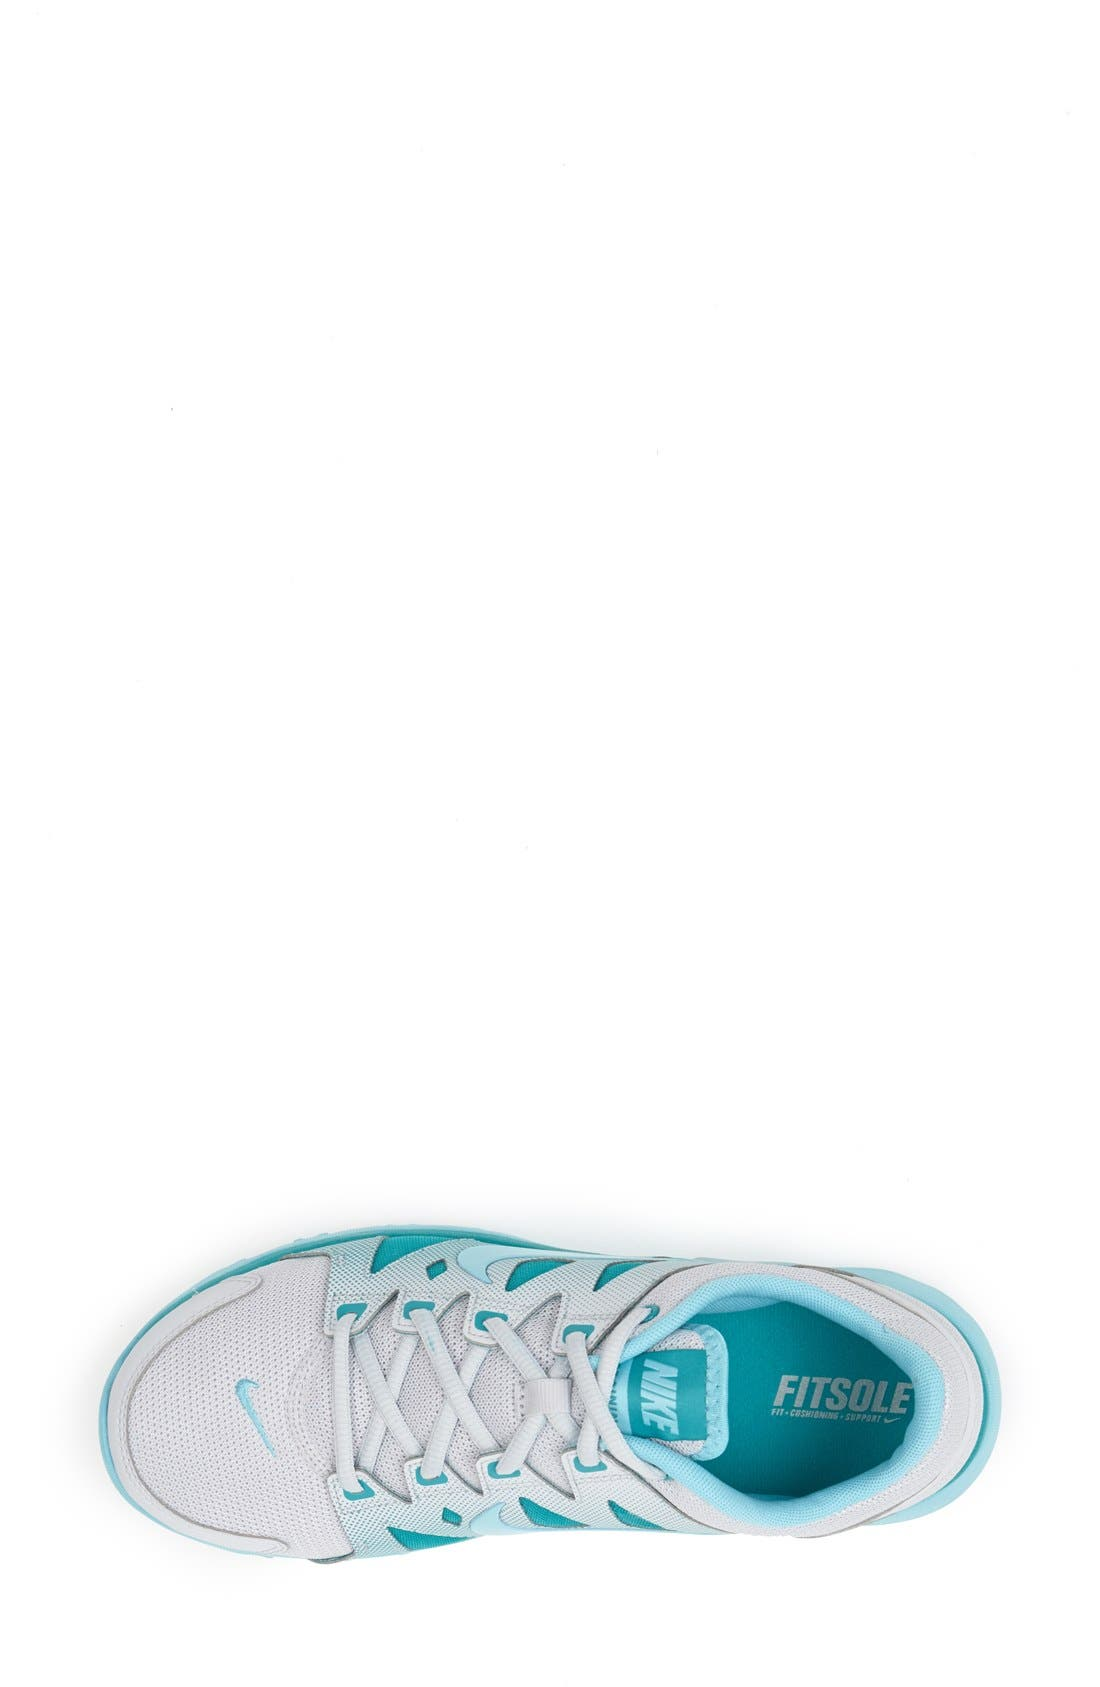 Alternate Image 3  - Nike 'Flex Supreme TR 2' Training Shoe (Women)